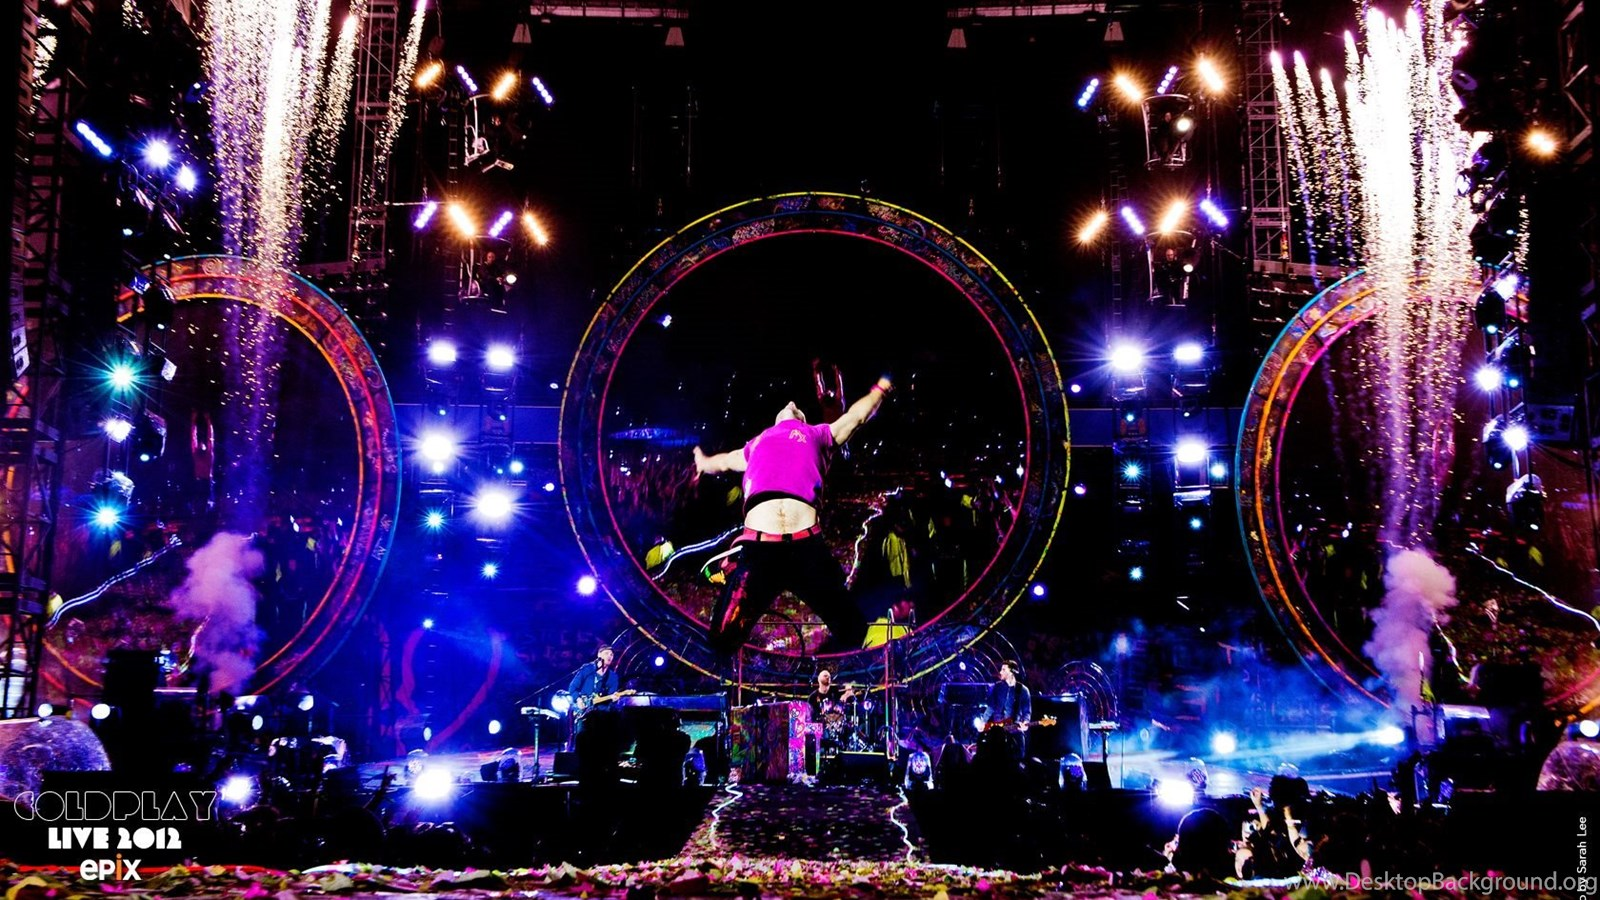 Coldplay wallpapers hd 16 high resolution wallpapers imgx popular voltagebd Choice Image